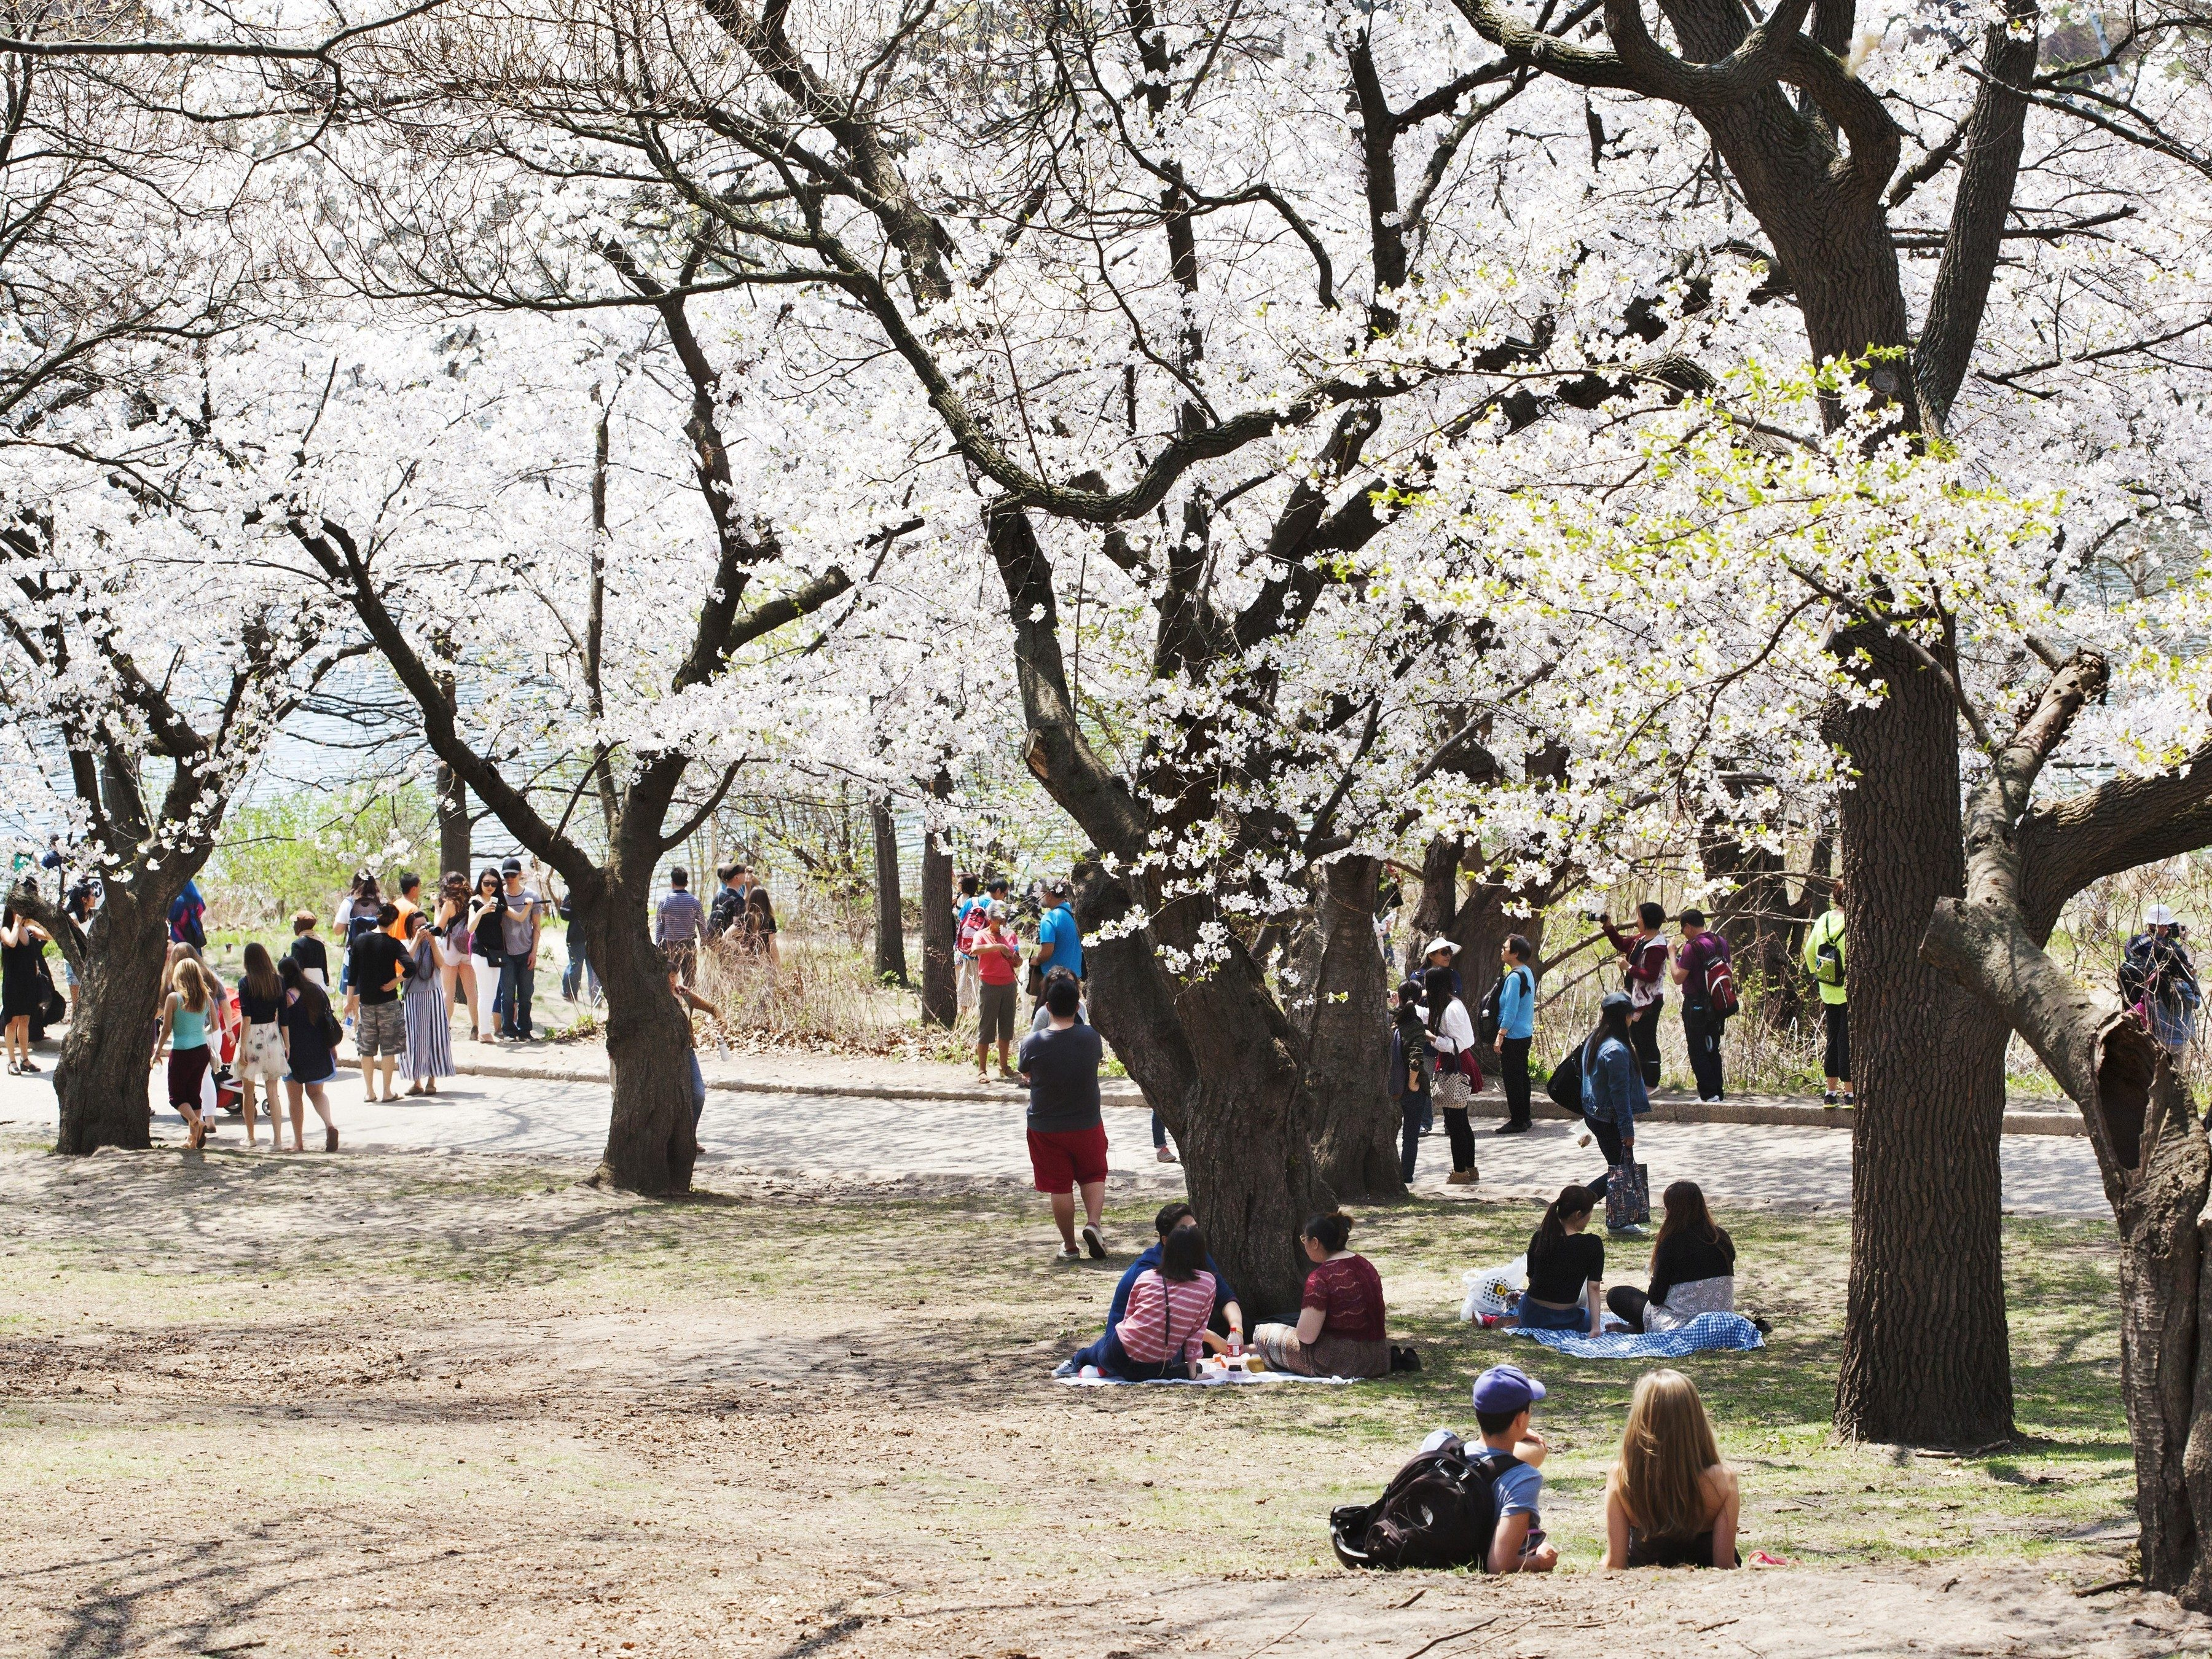 9. High Park's cherry blossoms